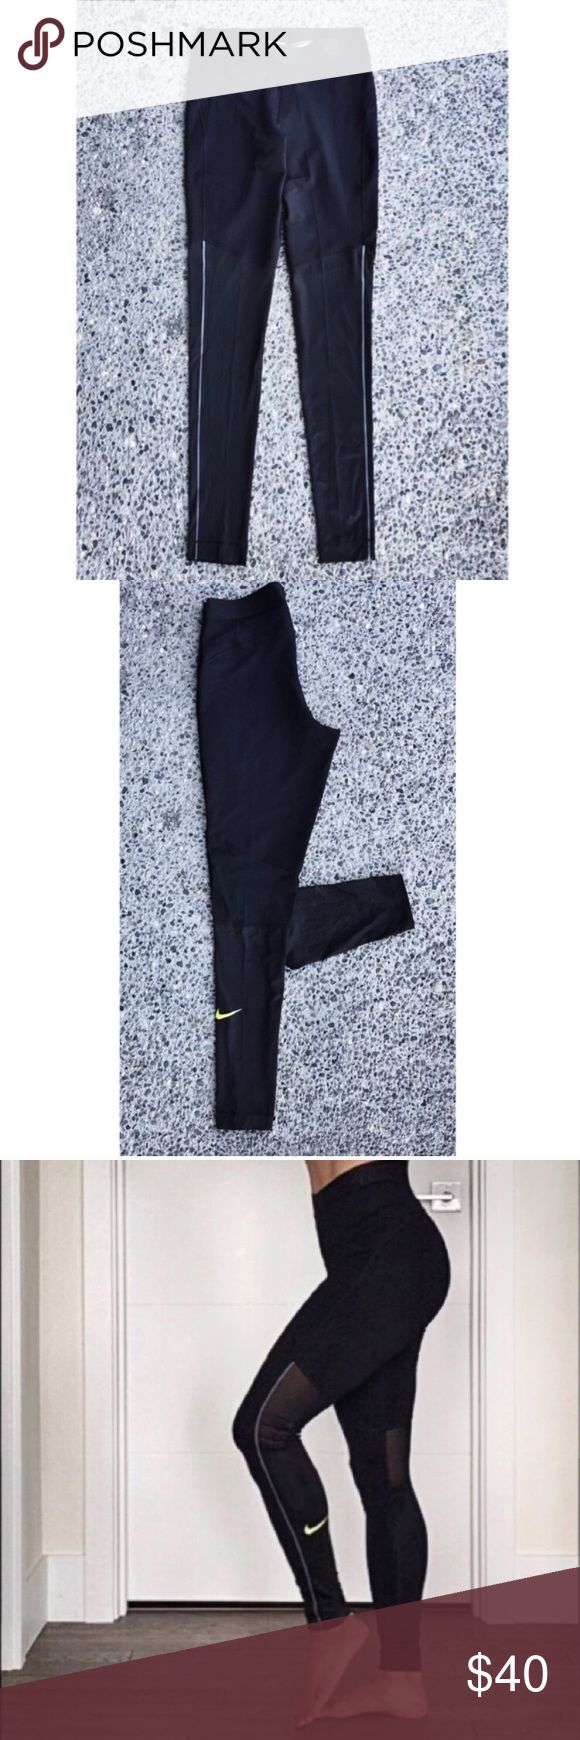 High Waisted Nike Pro Leggings These moisture wicking dri-fit leggings with a wide elastic waistband are perfect for working out.  Reflective neon yellow swoosh logo on left calf.  NWOT.  Price is firm. Nike Pants Leggings